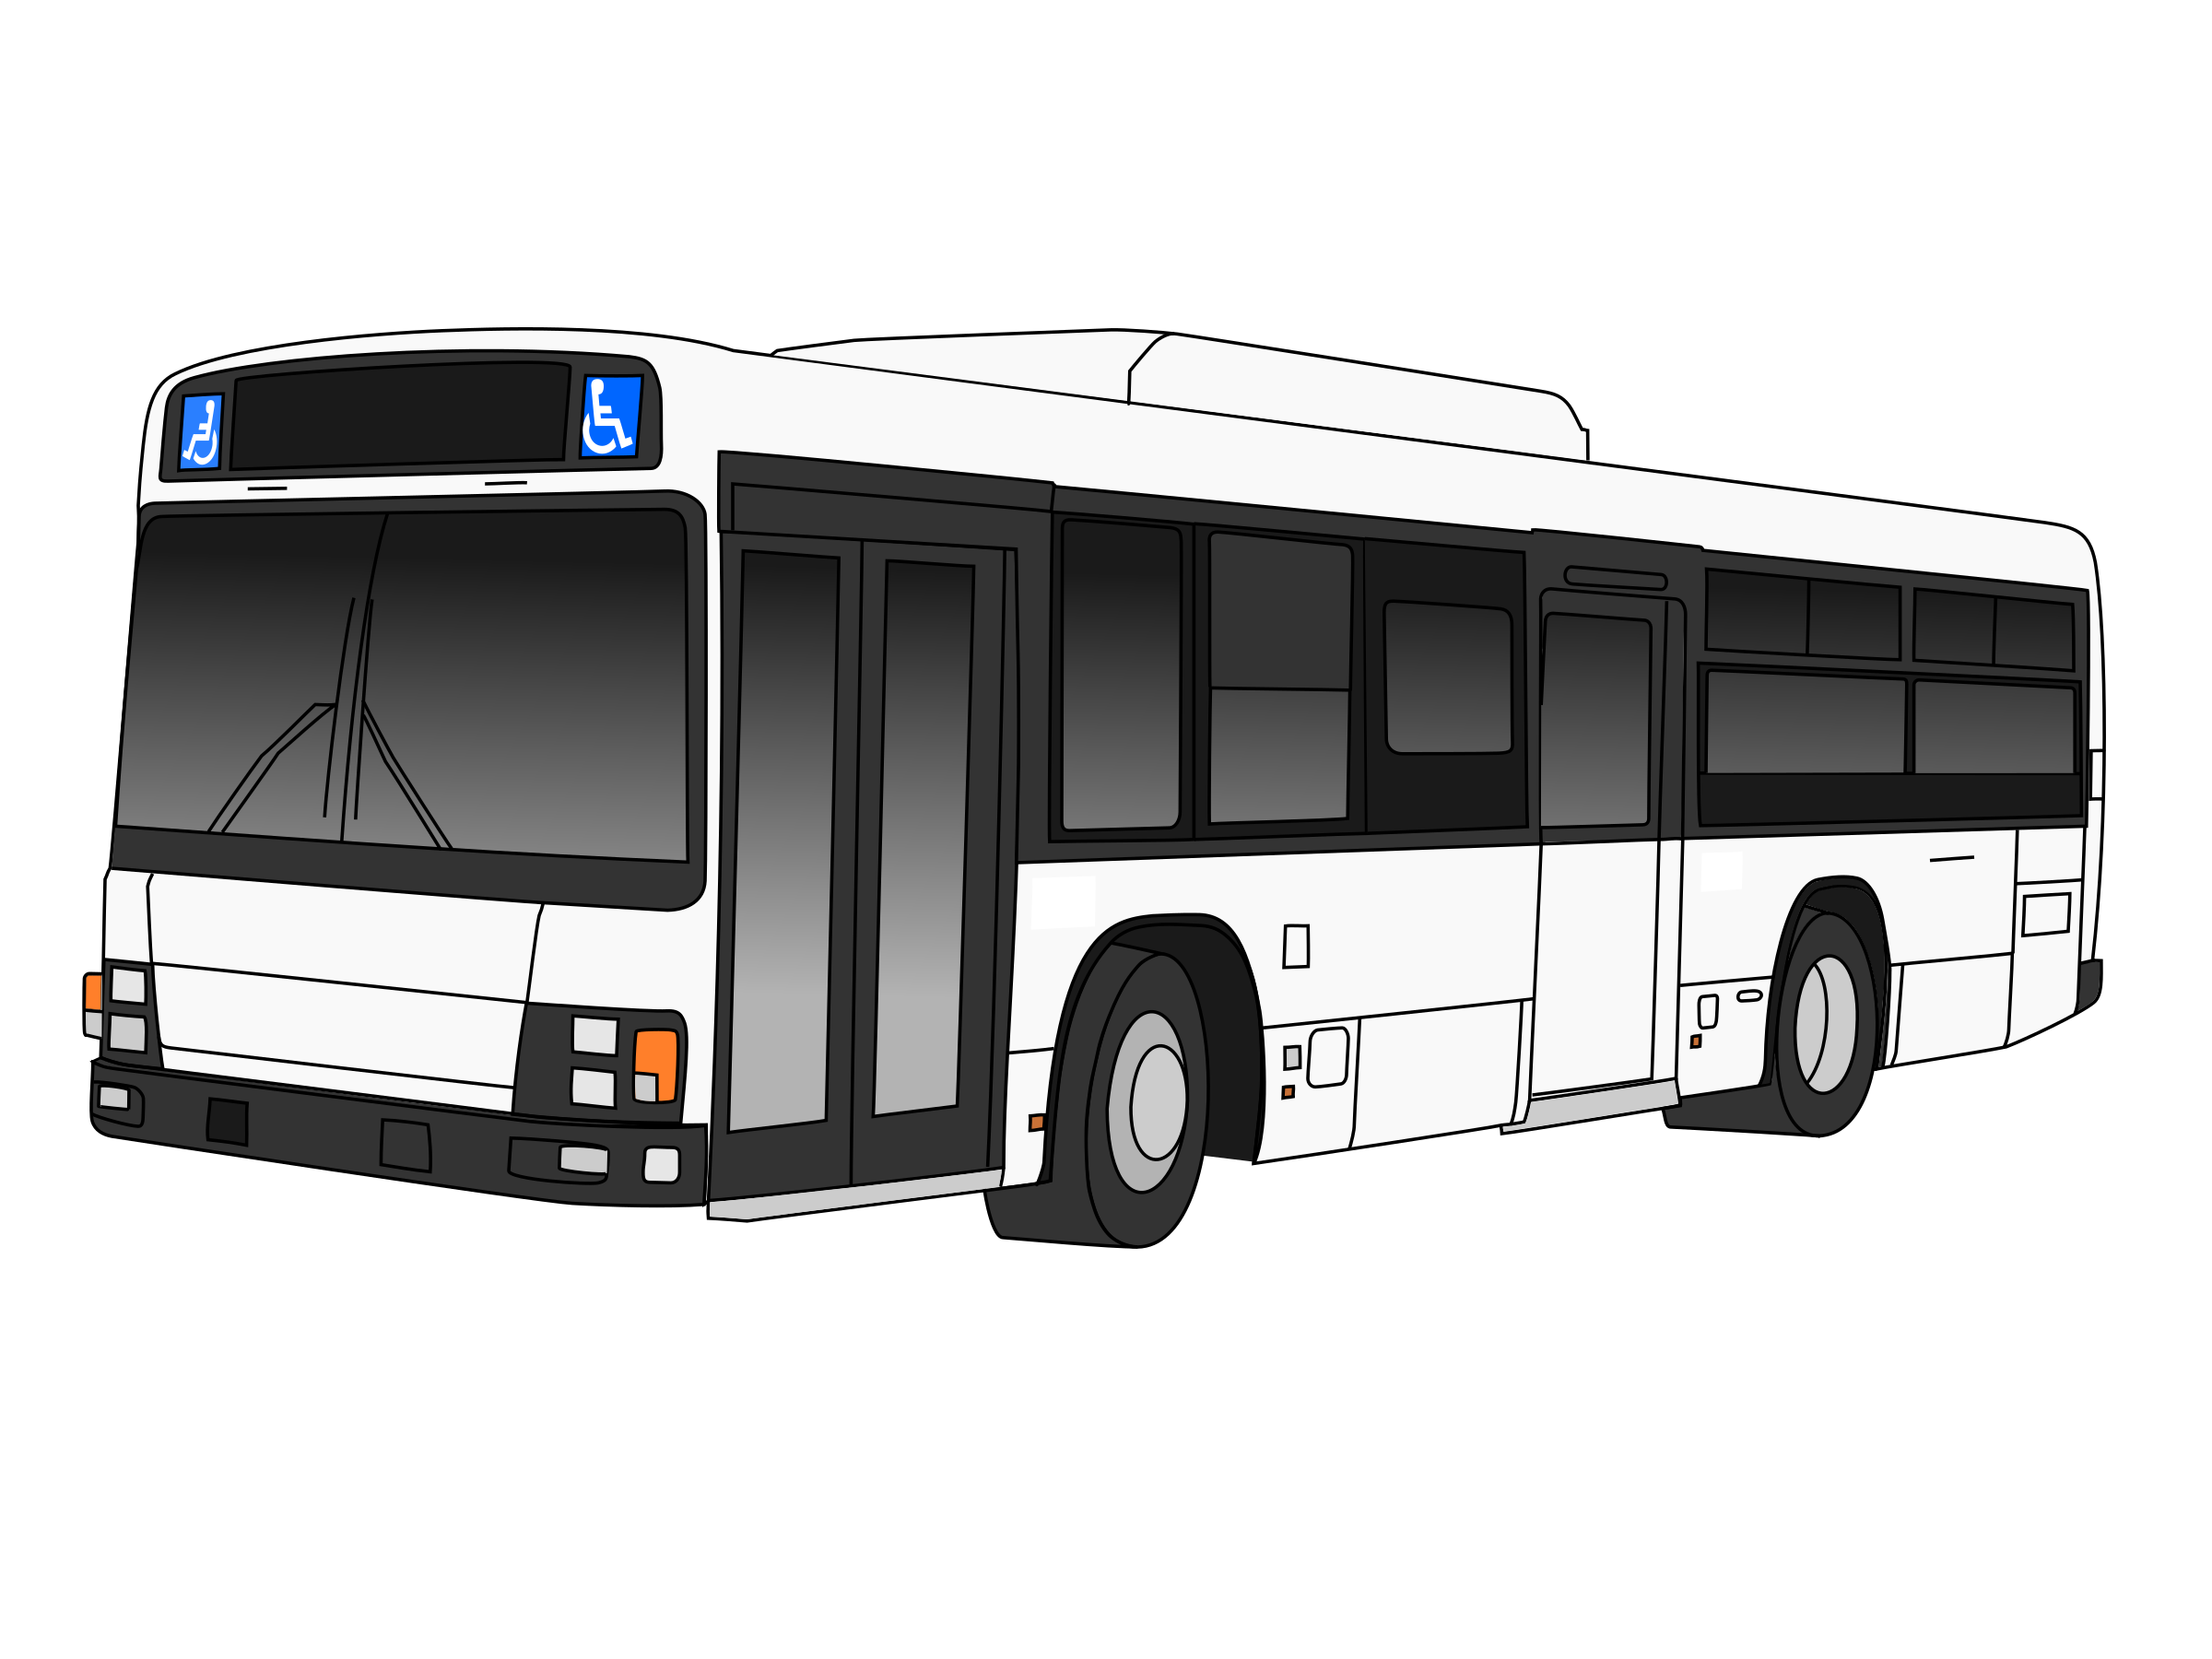 Transport drawing bus. File draw png wikimedia